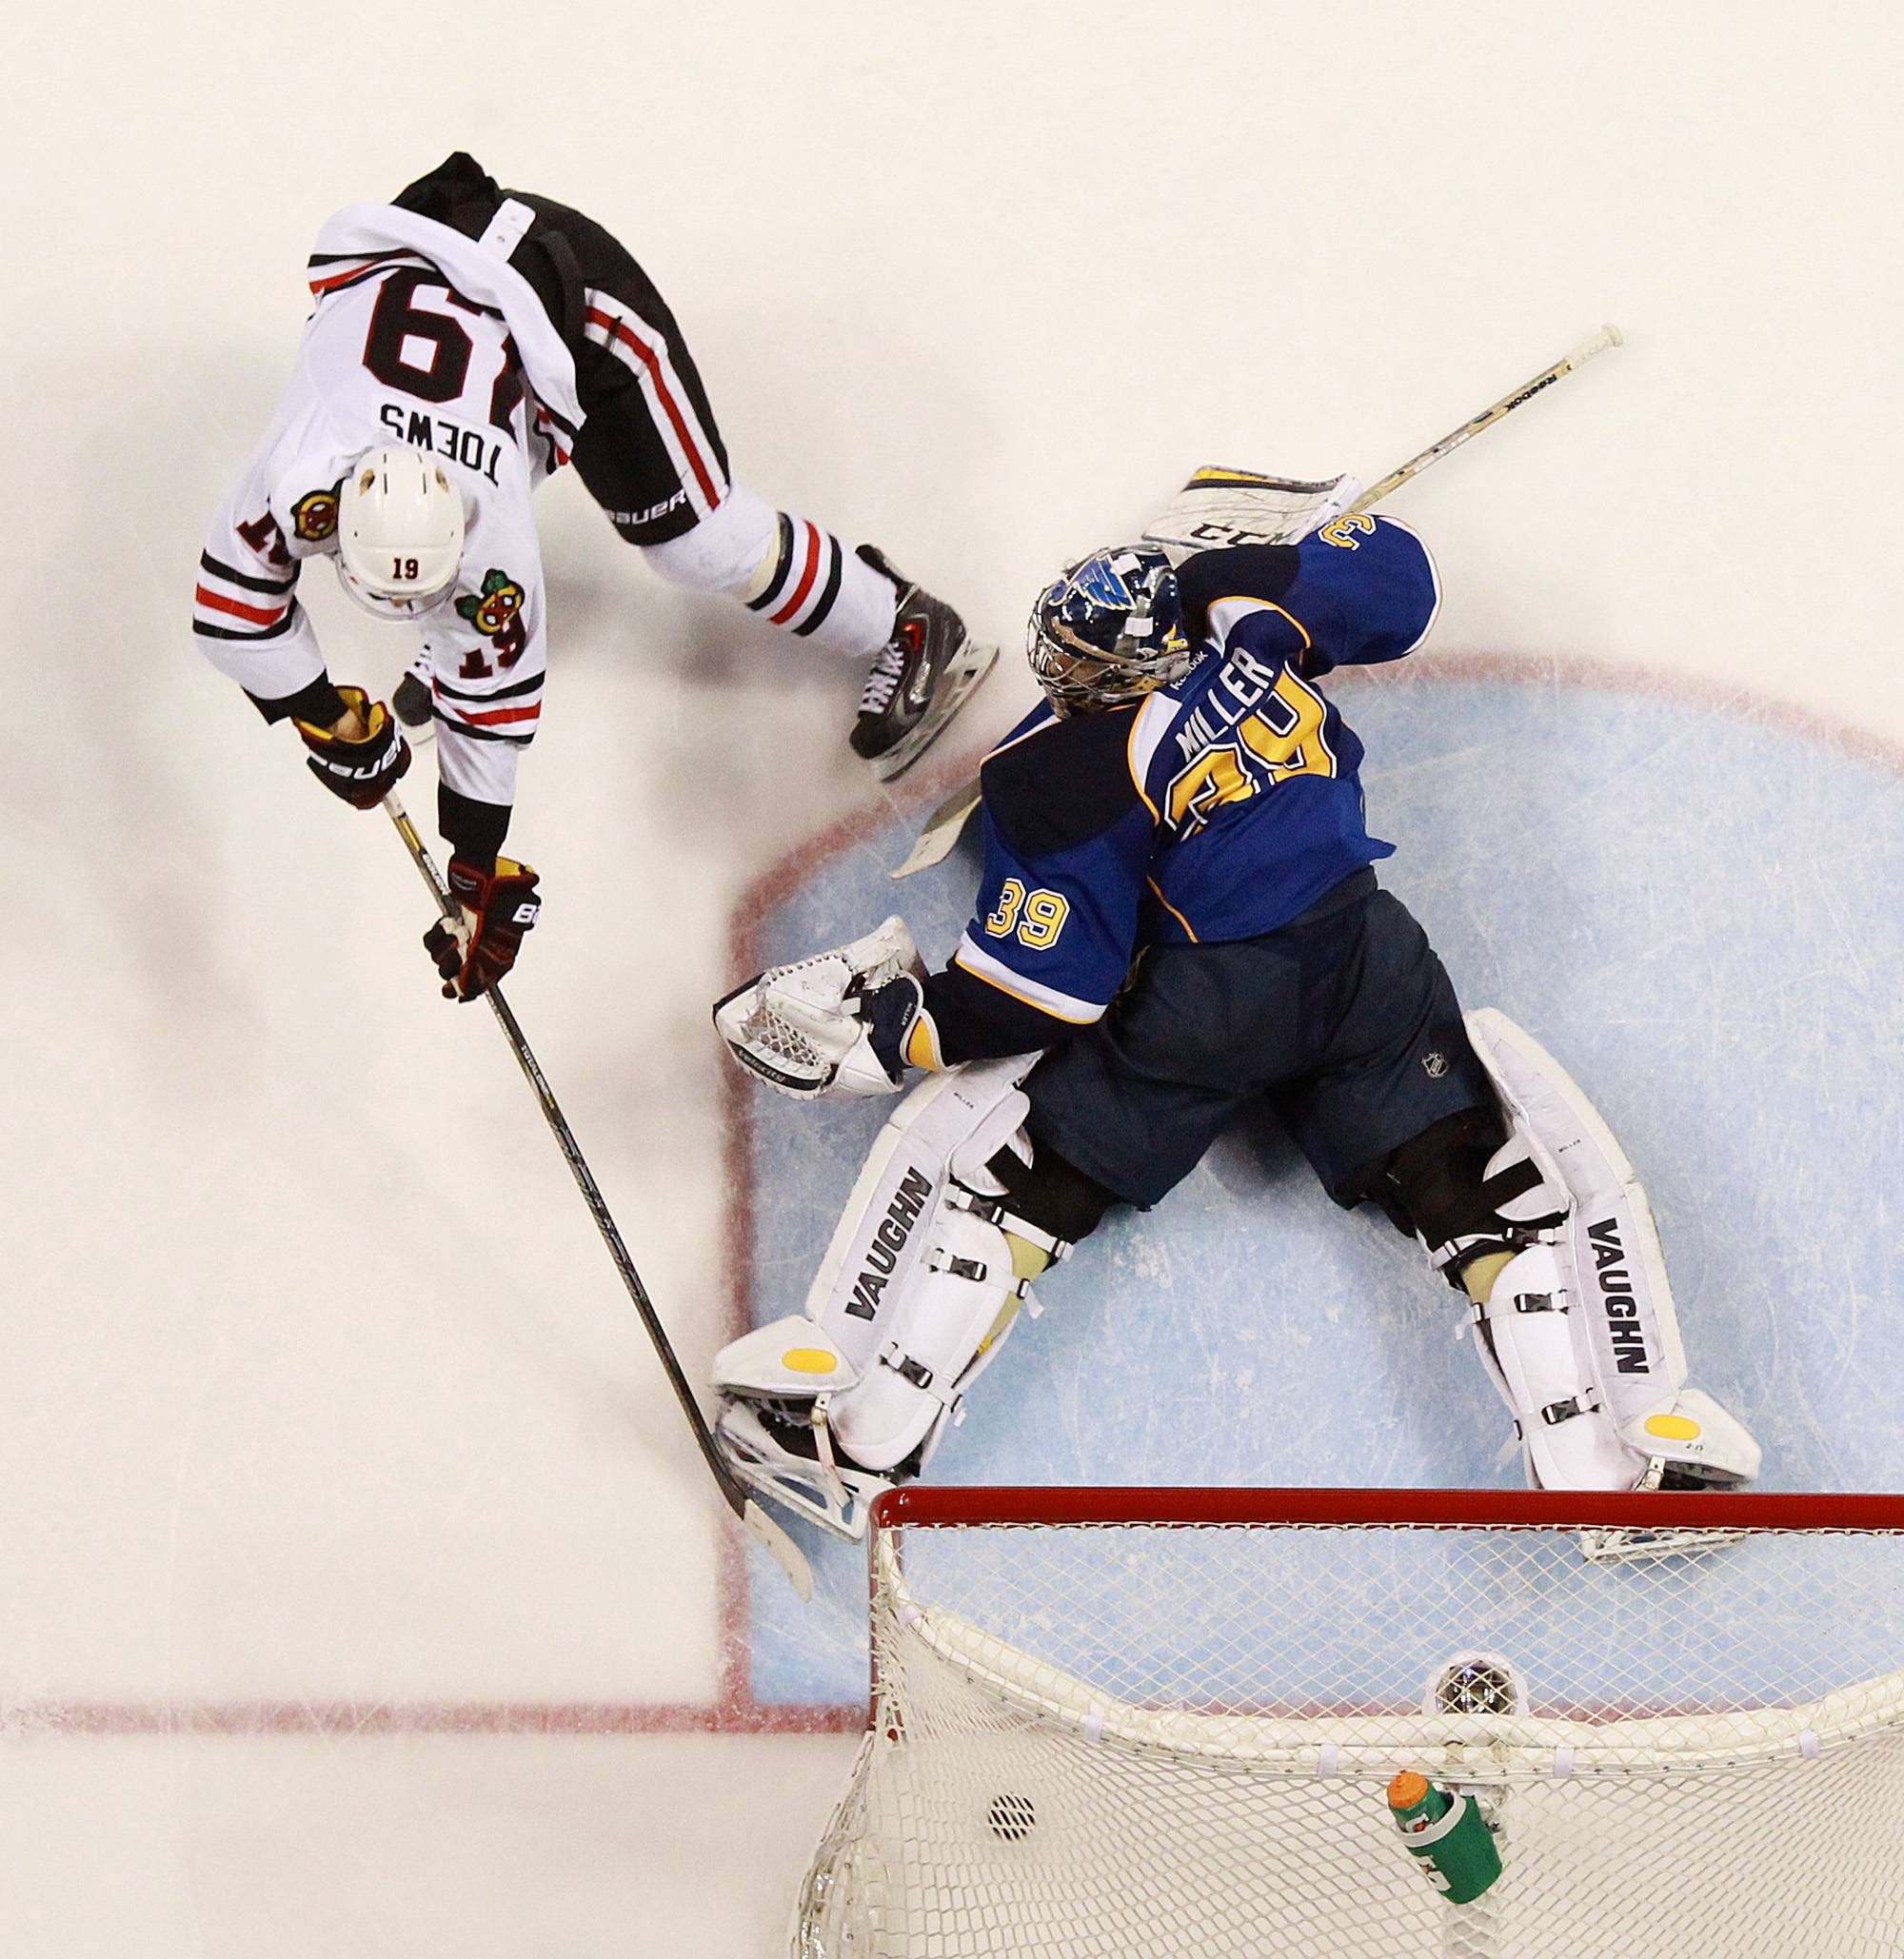 Chicago Blackhawks center Jonathan Toews scores the game-winning goal in overtime past St. Louis Blues goaltender Ryan Miller during Game 5.